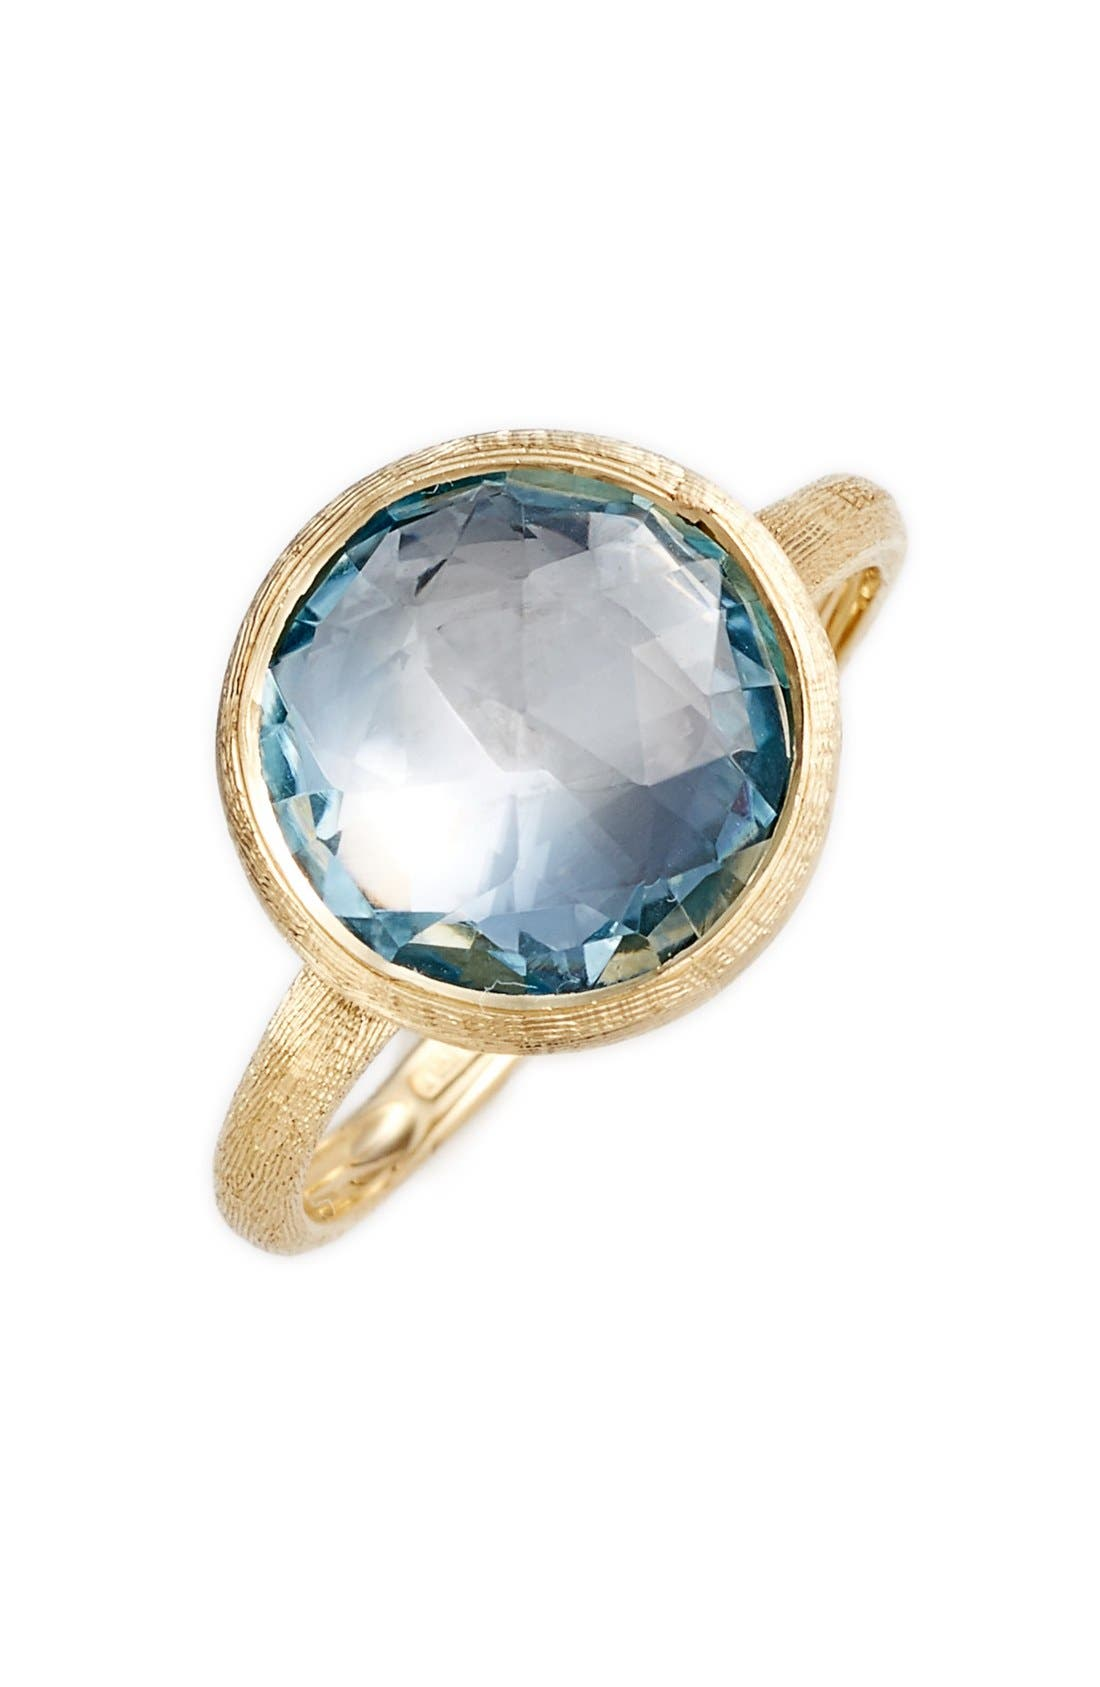 Stackable Semiprecious Stone Ring,                             Main thumbnail 1, color,                             Yellow Gold/ Blue Topaz